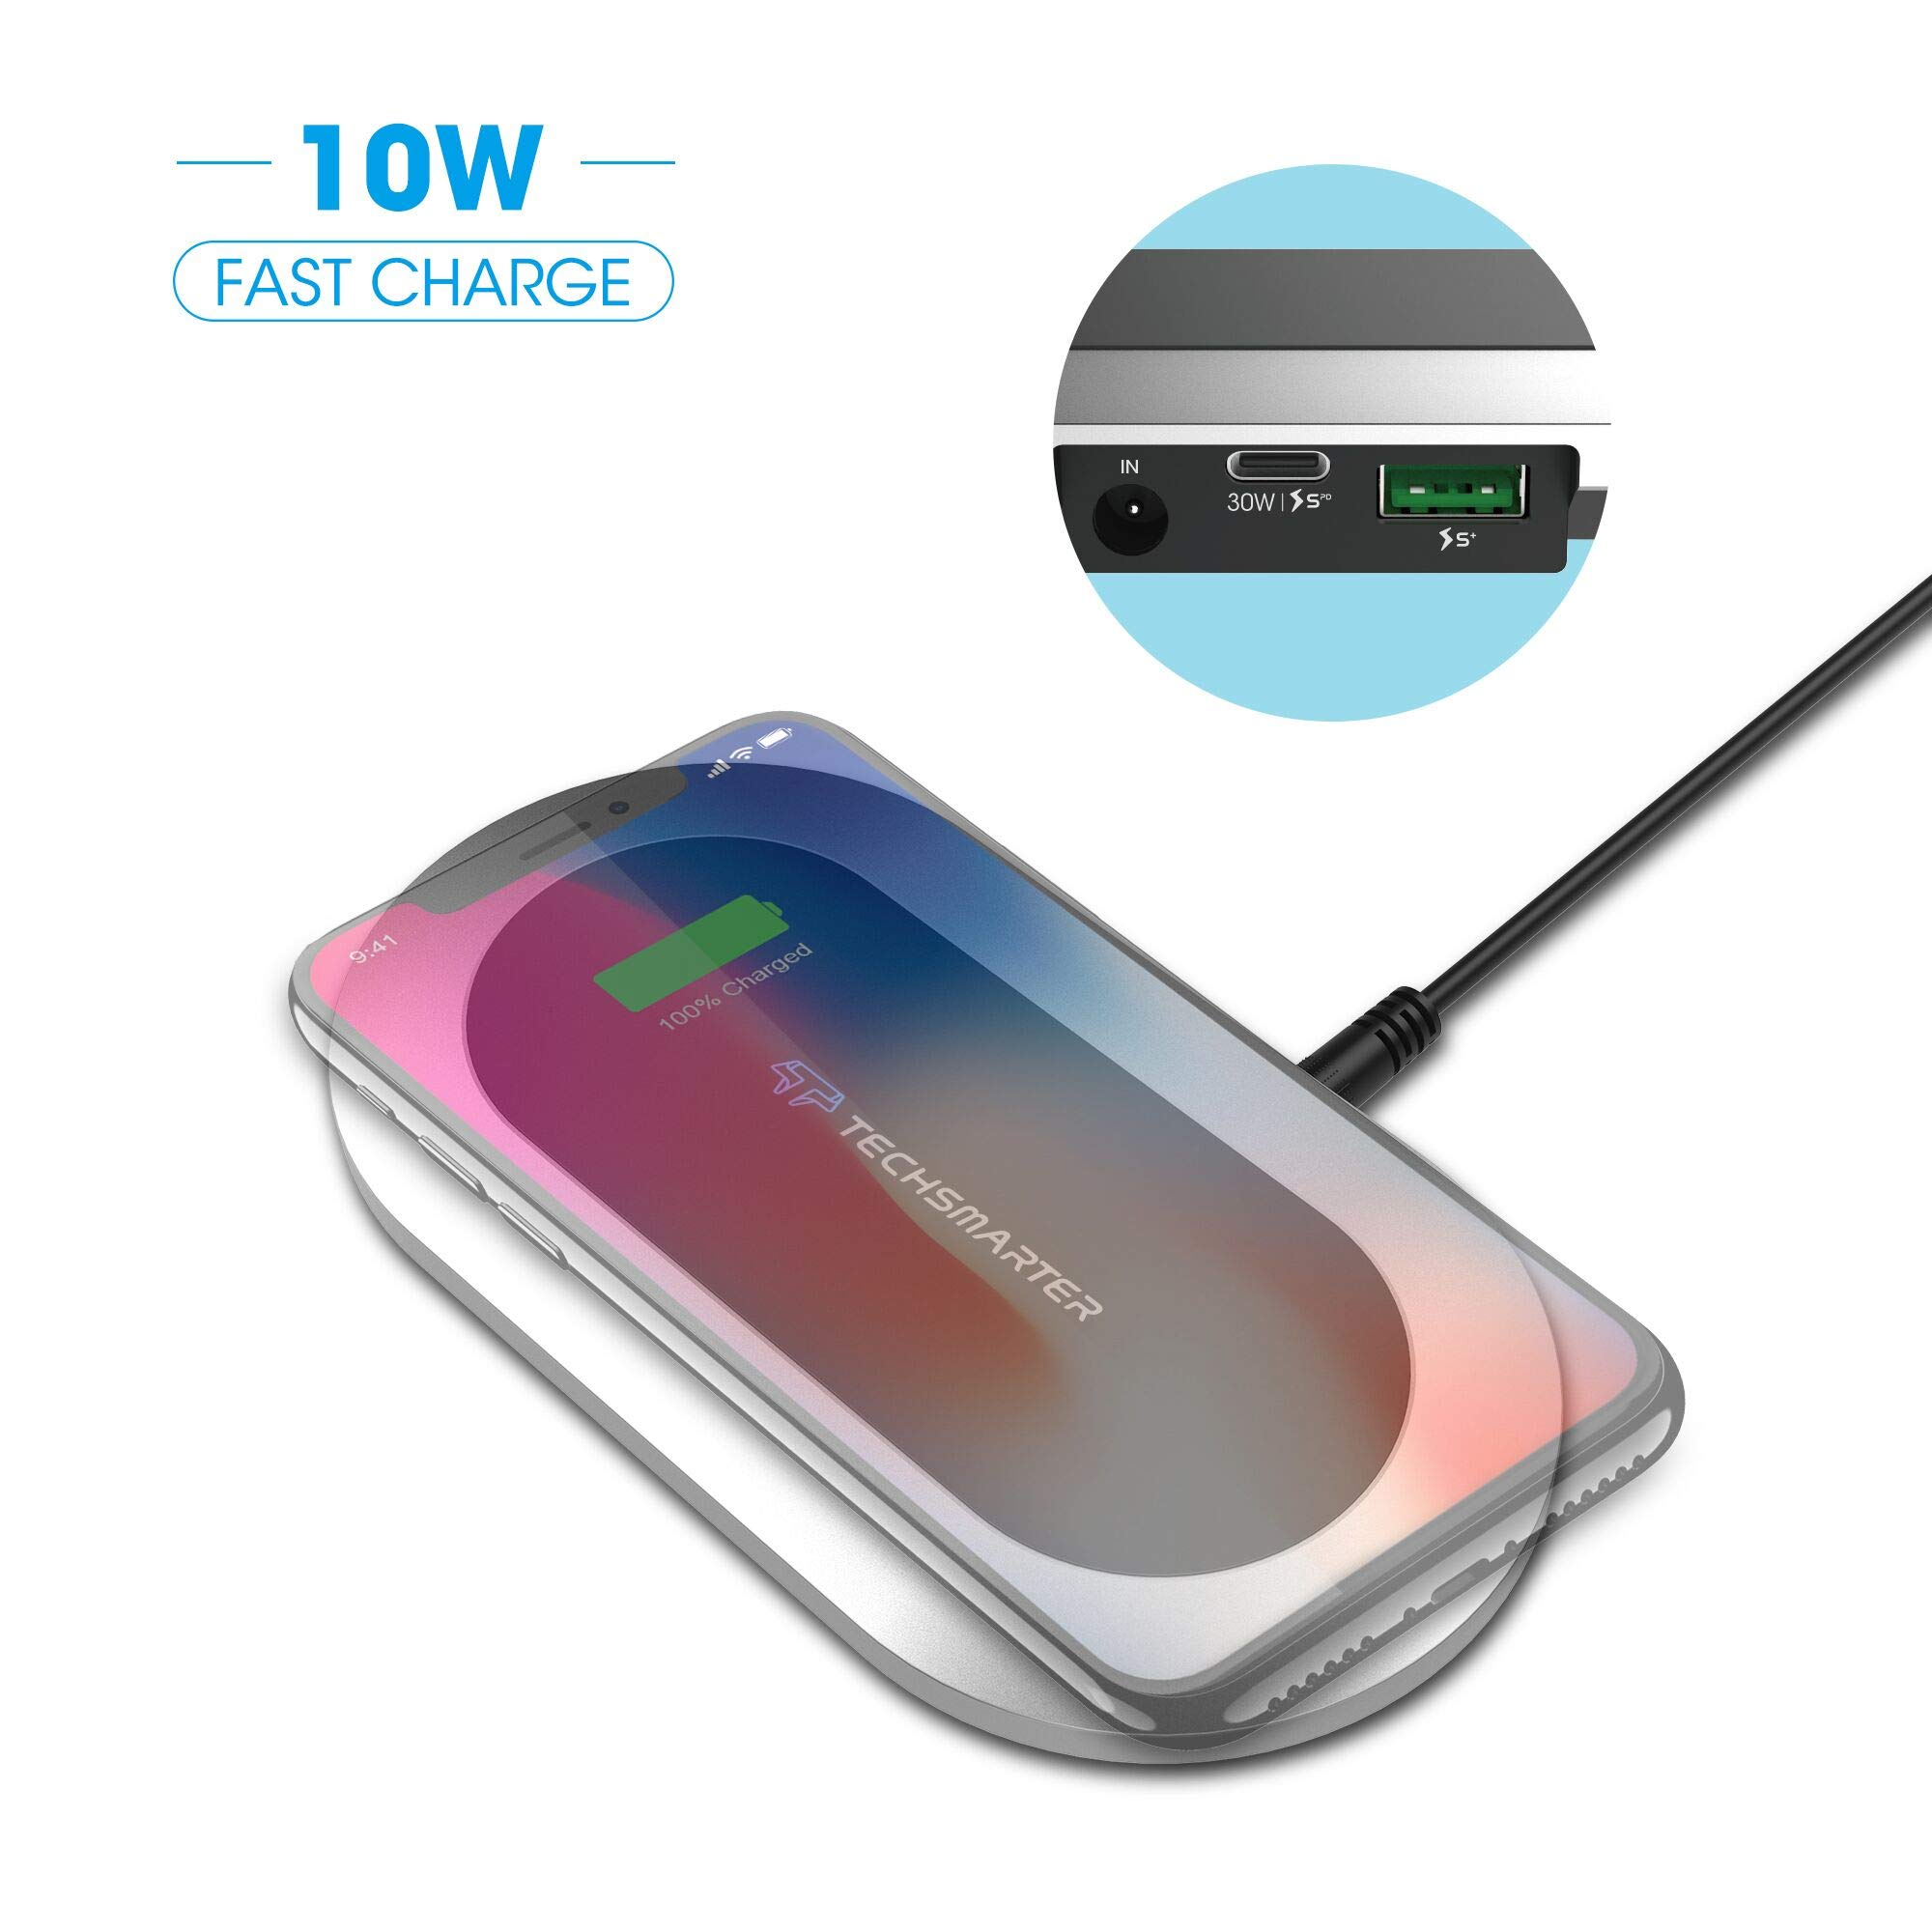 Techsmarter 3-in-1 Wireless Charging Station, for USB-C Devices, Smartphone, Samsung, LG, HTC, iPhone, iPad Multiple Phones Devices with TS+ USB Port, 30W Power Delivery Ports & Wireless Charging Pad